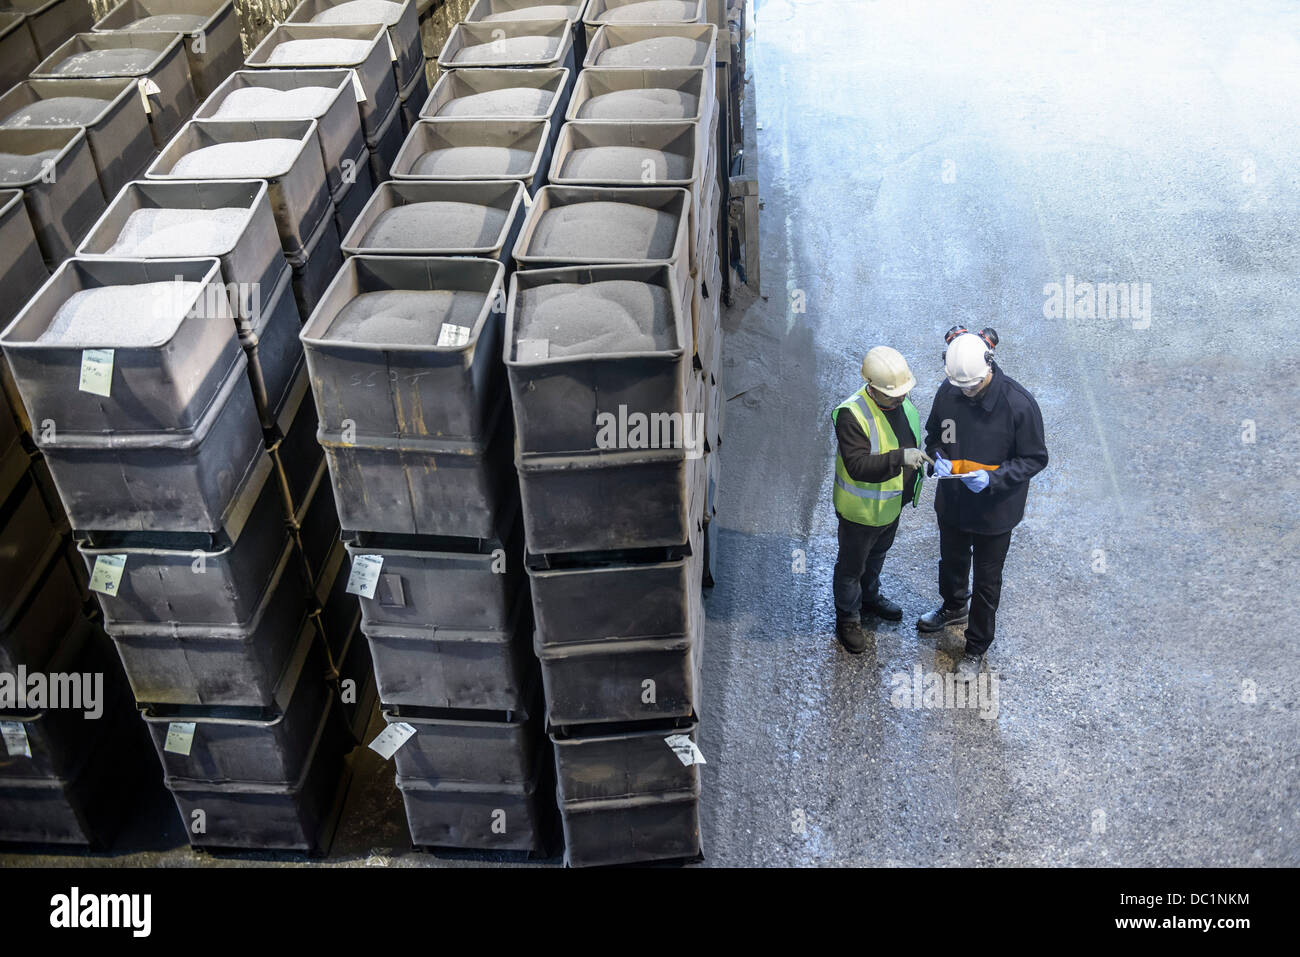 Workers monitoring crates of steel shot in steel foundry Stock Photo